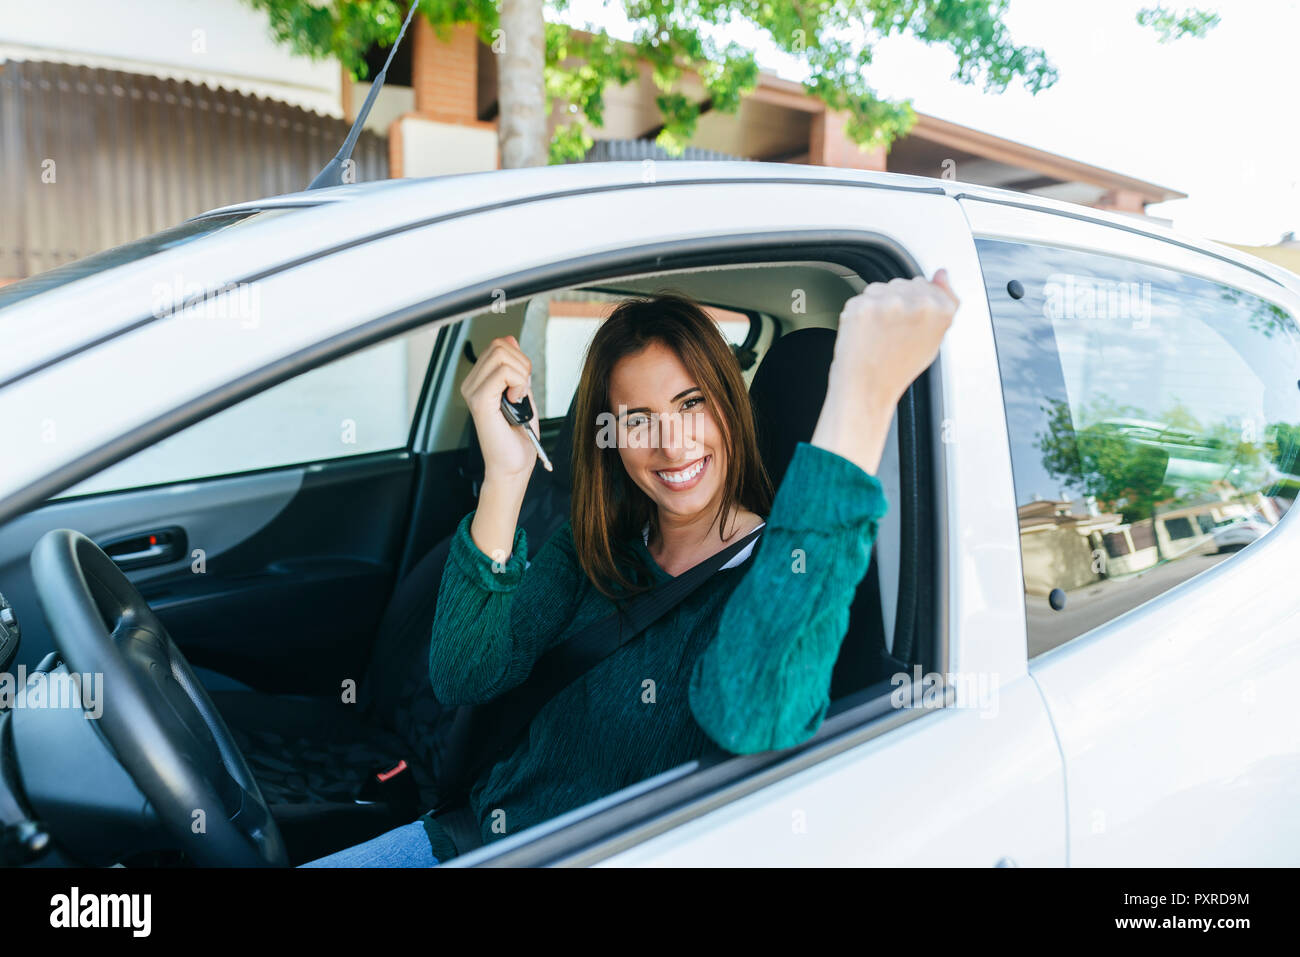 Woman inside of a car making triumph gesture - Stock Image